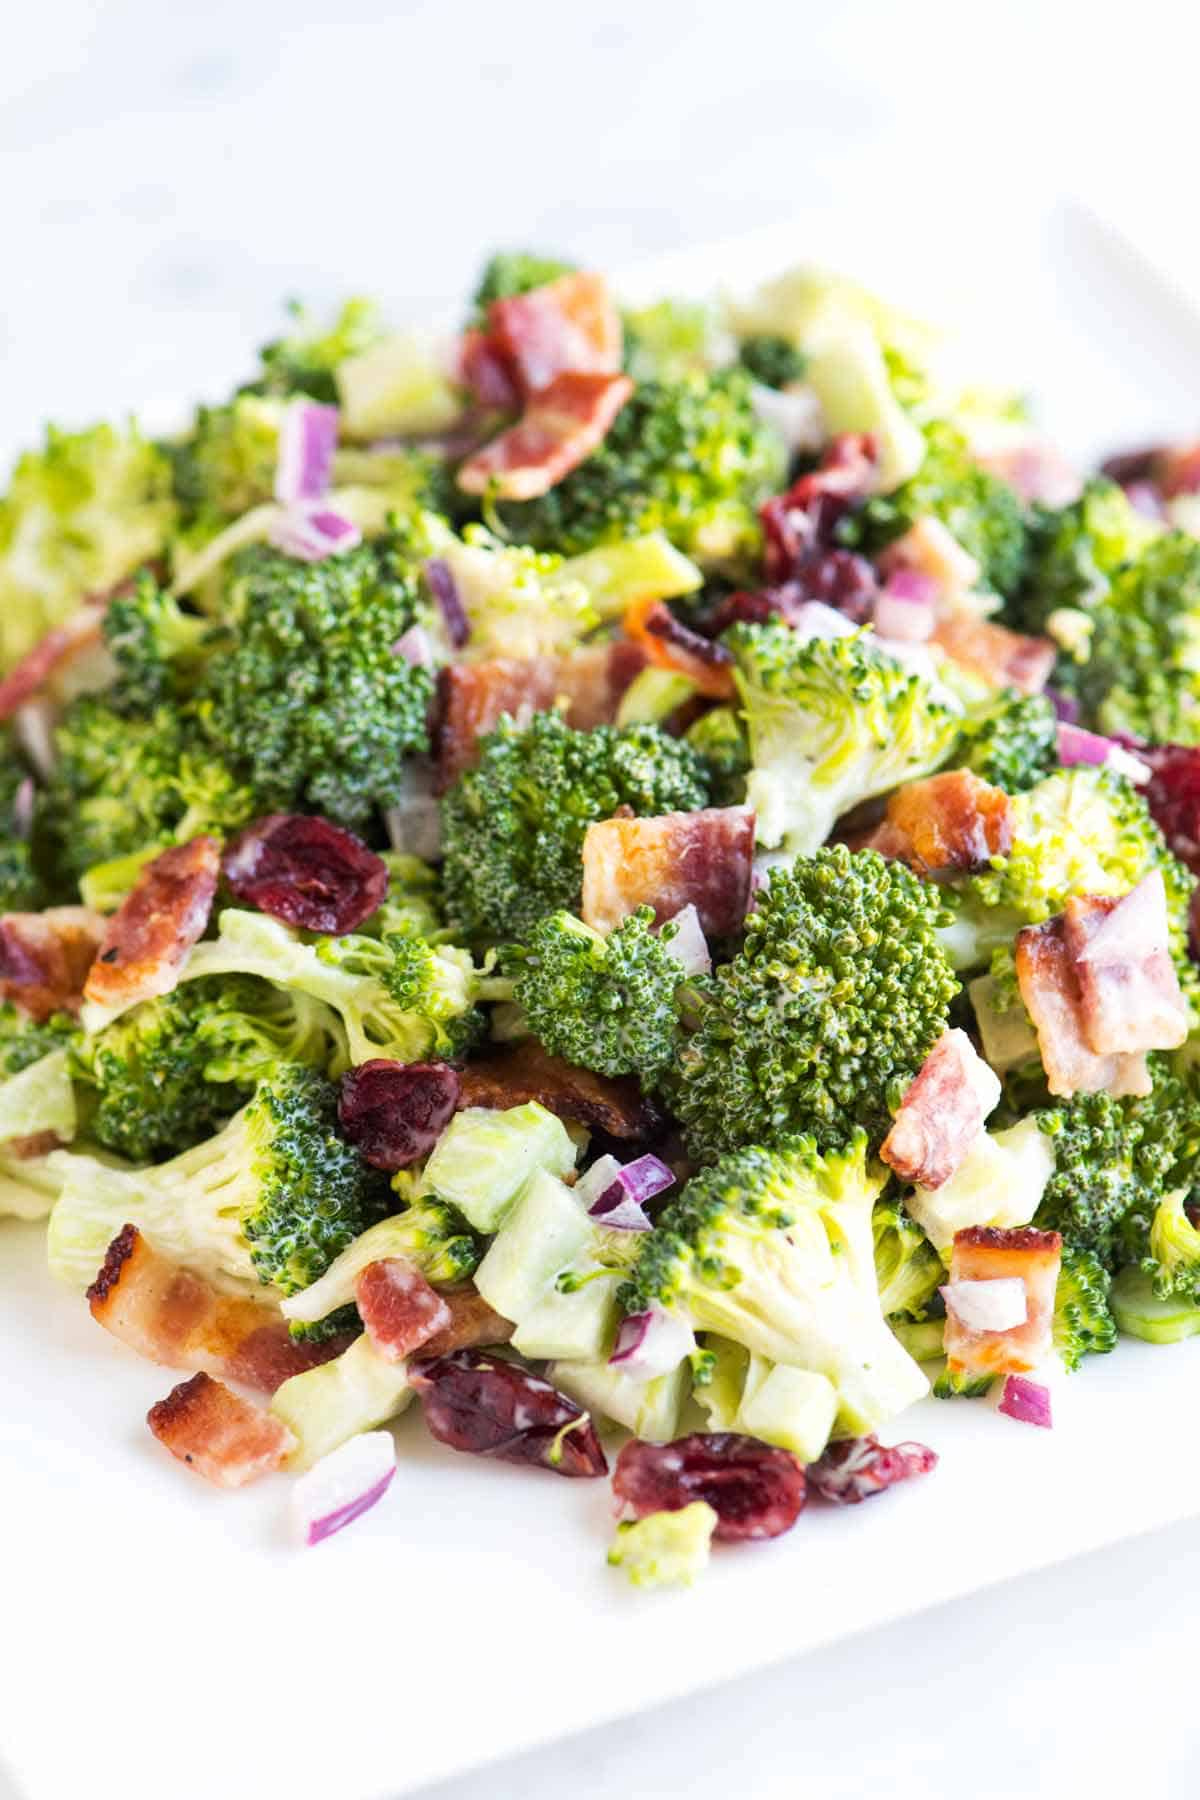 Easy Creamy Broccoli Salad With Bacon